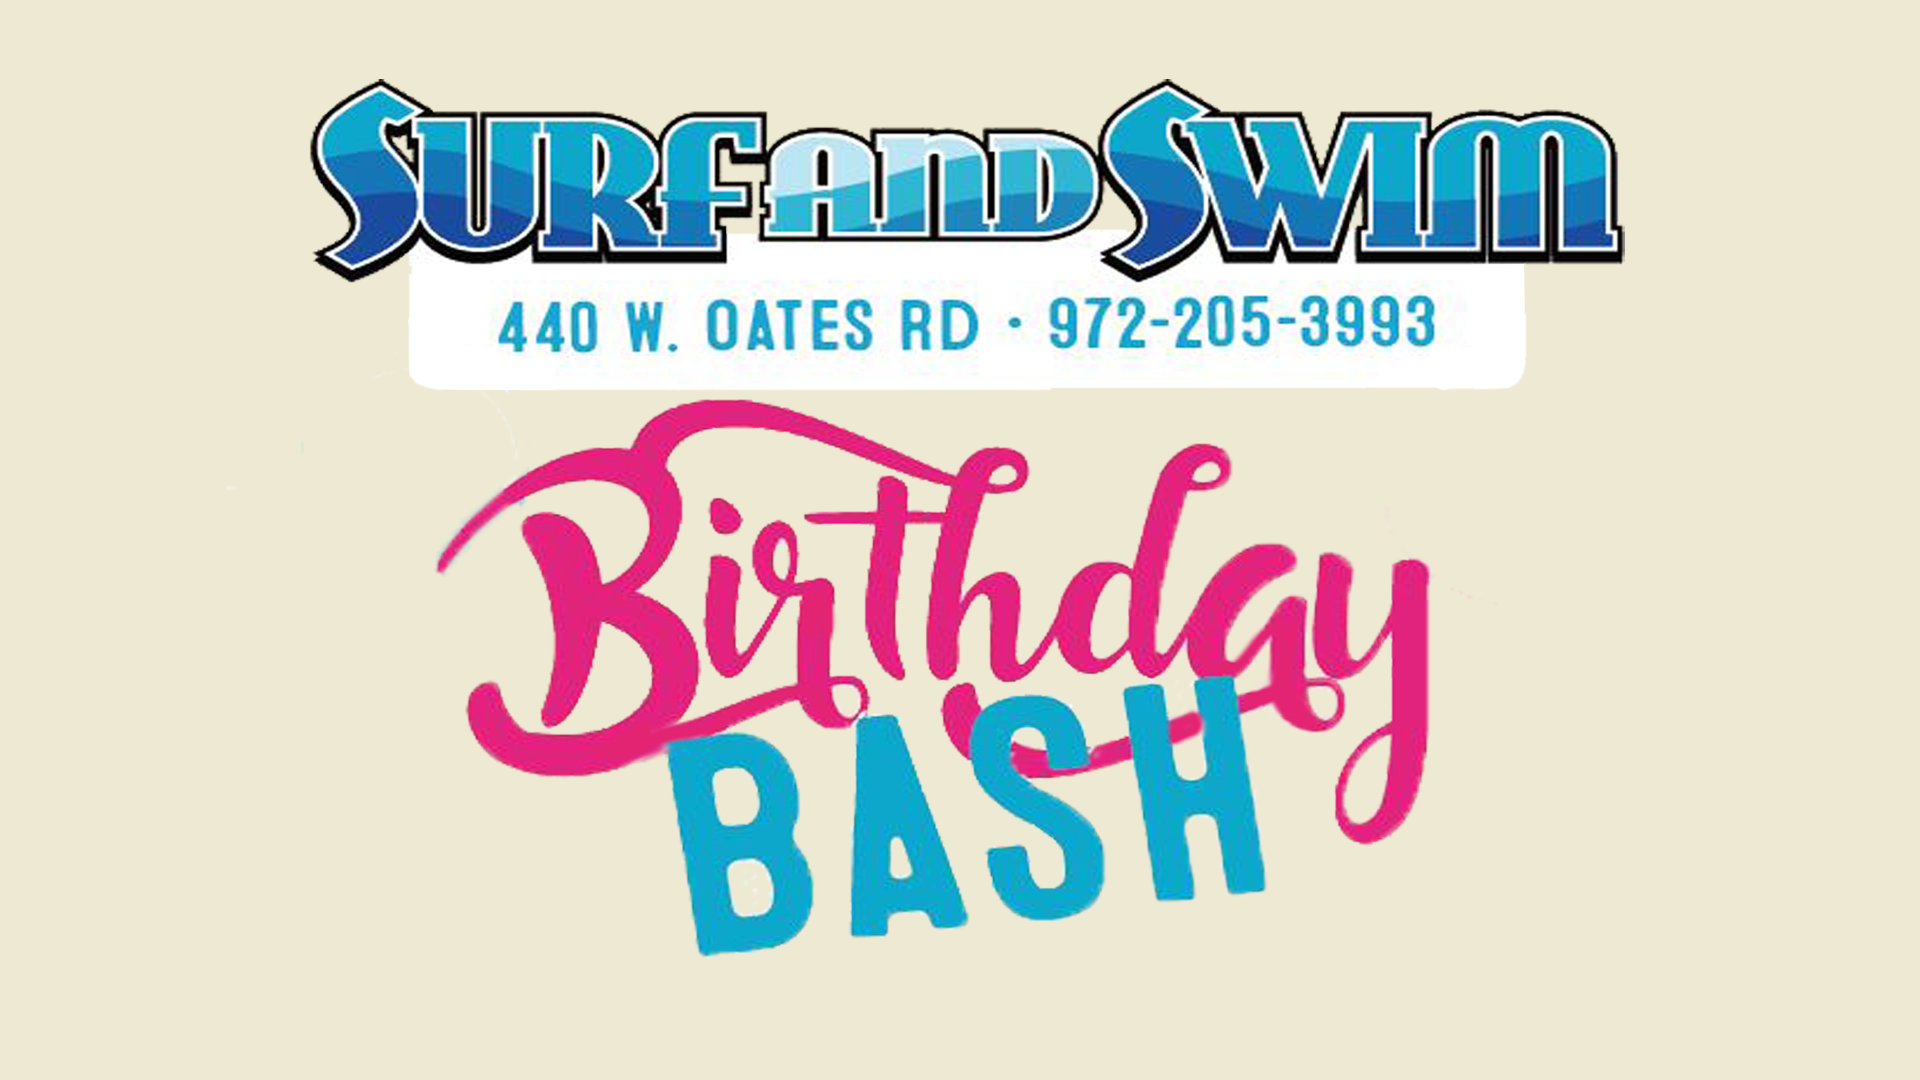 BirthdayBash-Cover image with location and phone number